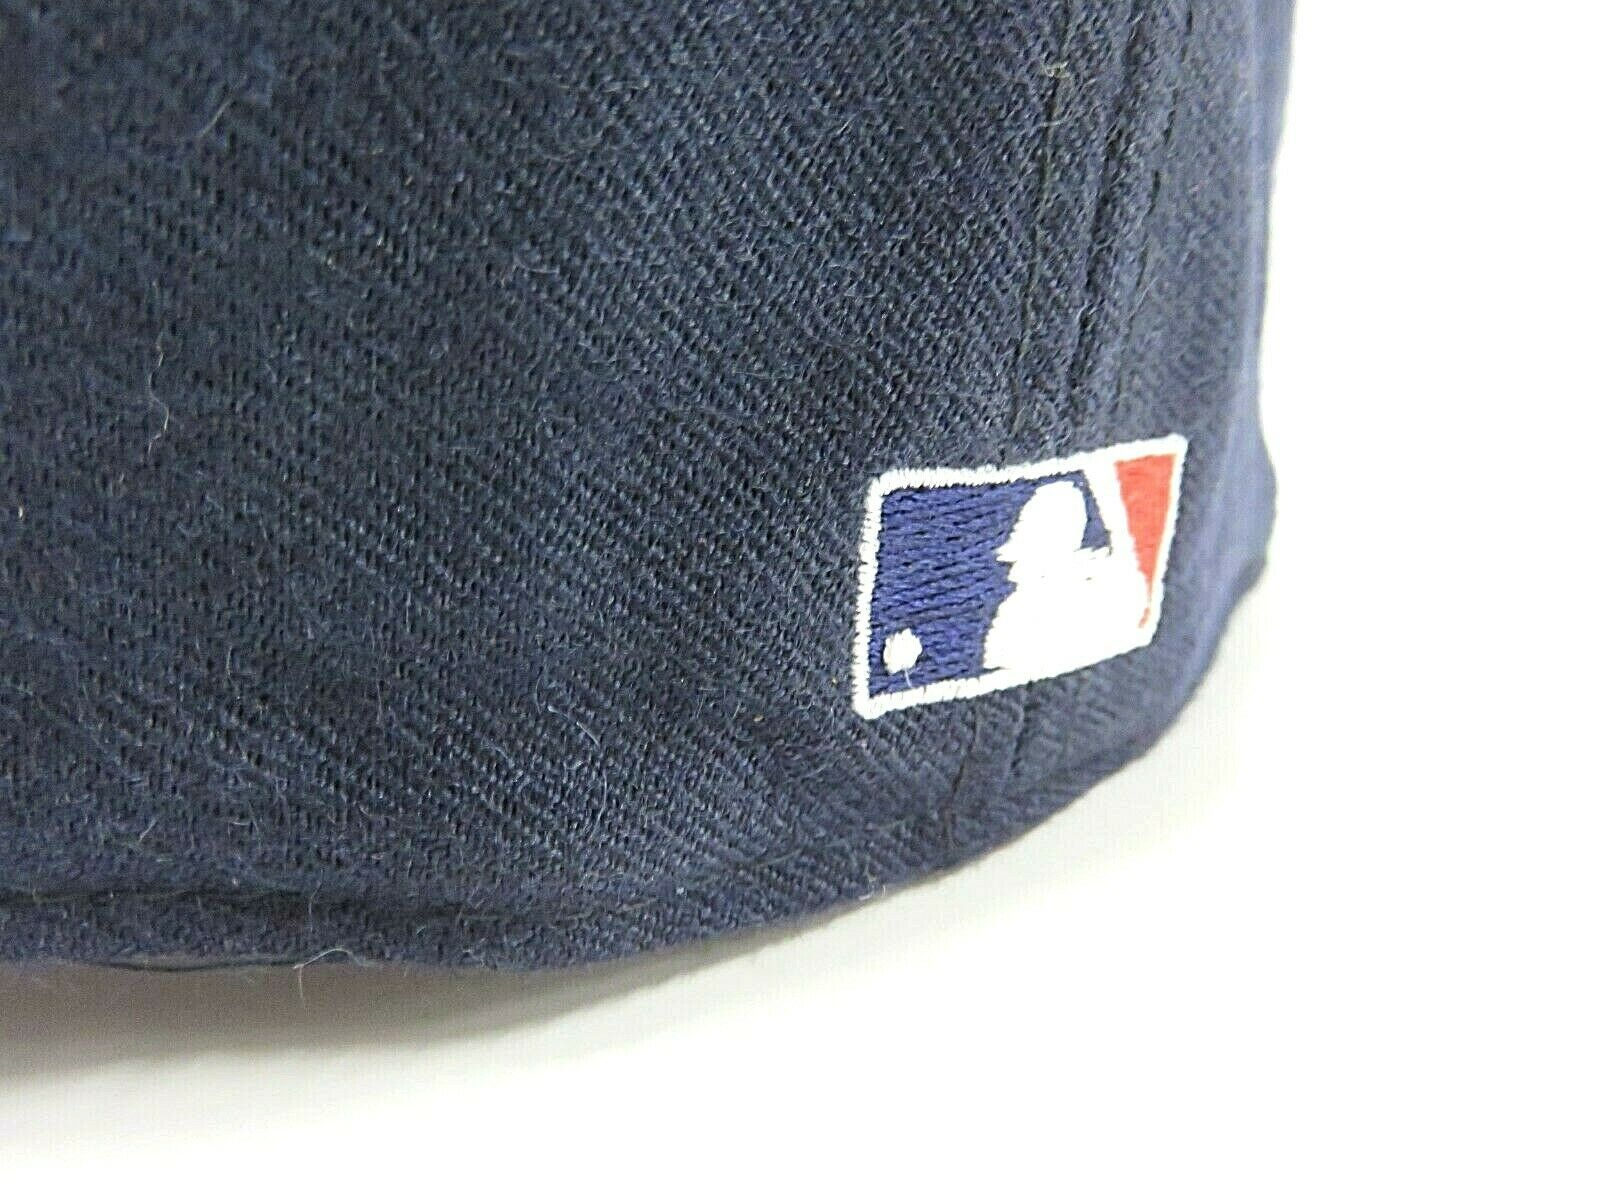 VTG New Era St. Louis Cardinals MLB Baseball Fitted Hat Size 7 3/4 Made in USA image 4